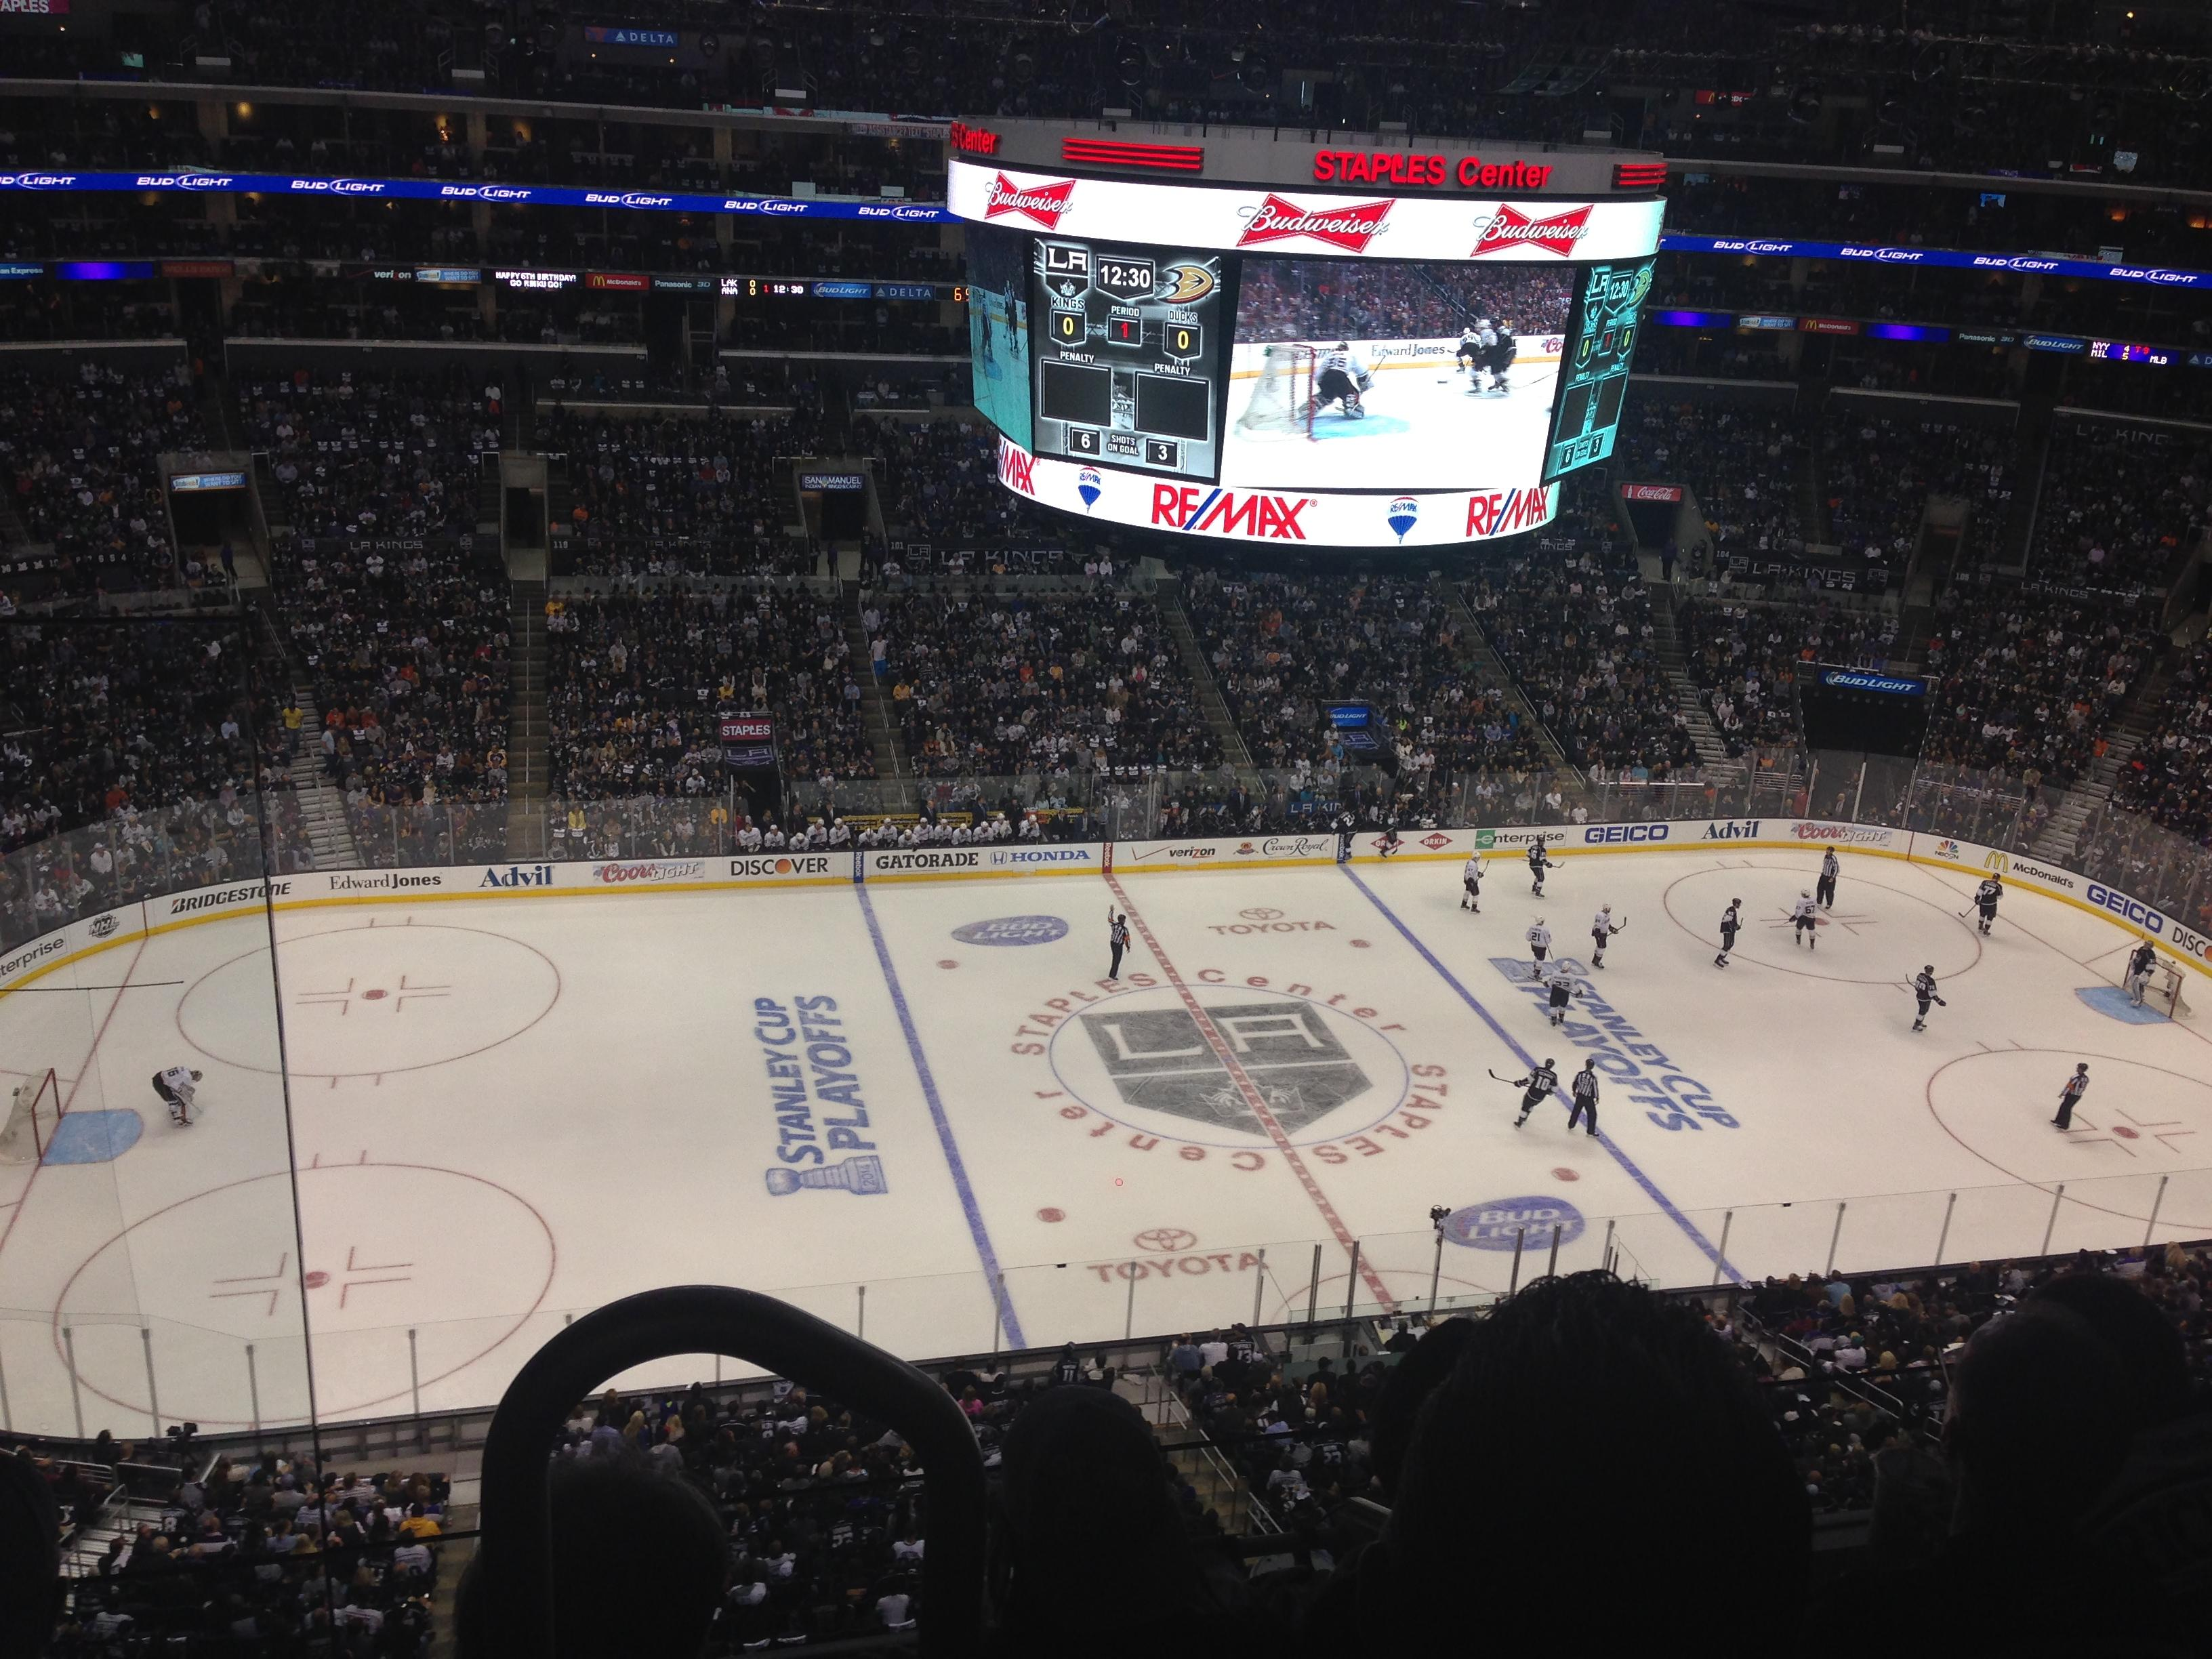 Staples Center Section 334 Staples Center Section 334 Los